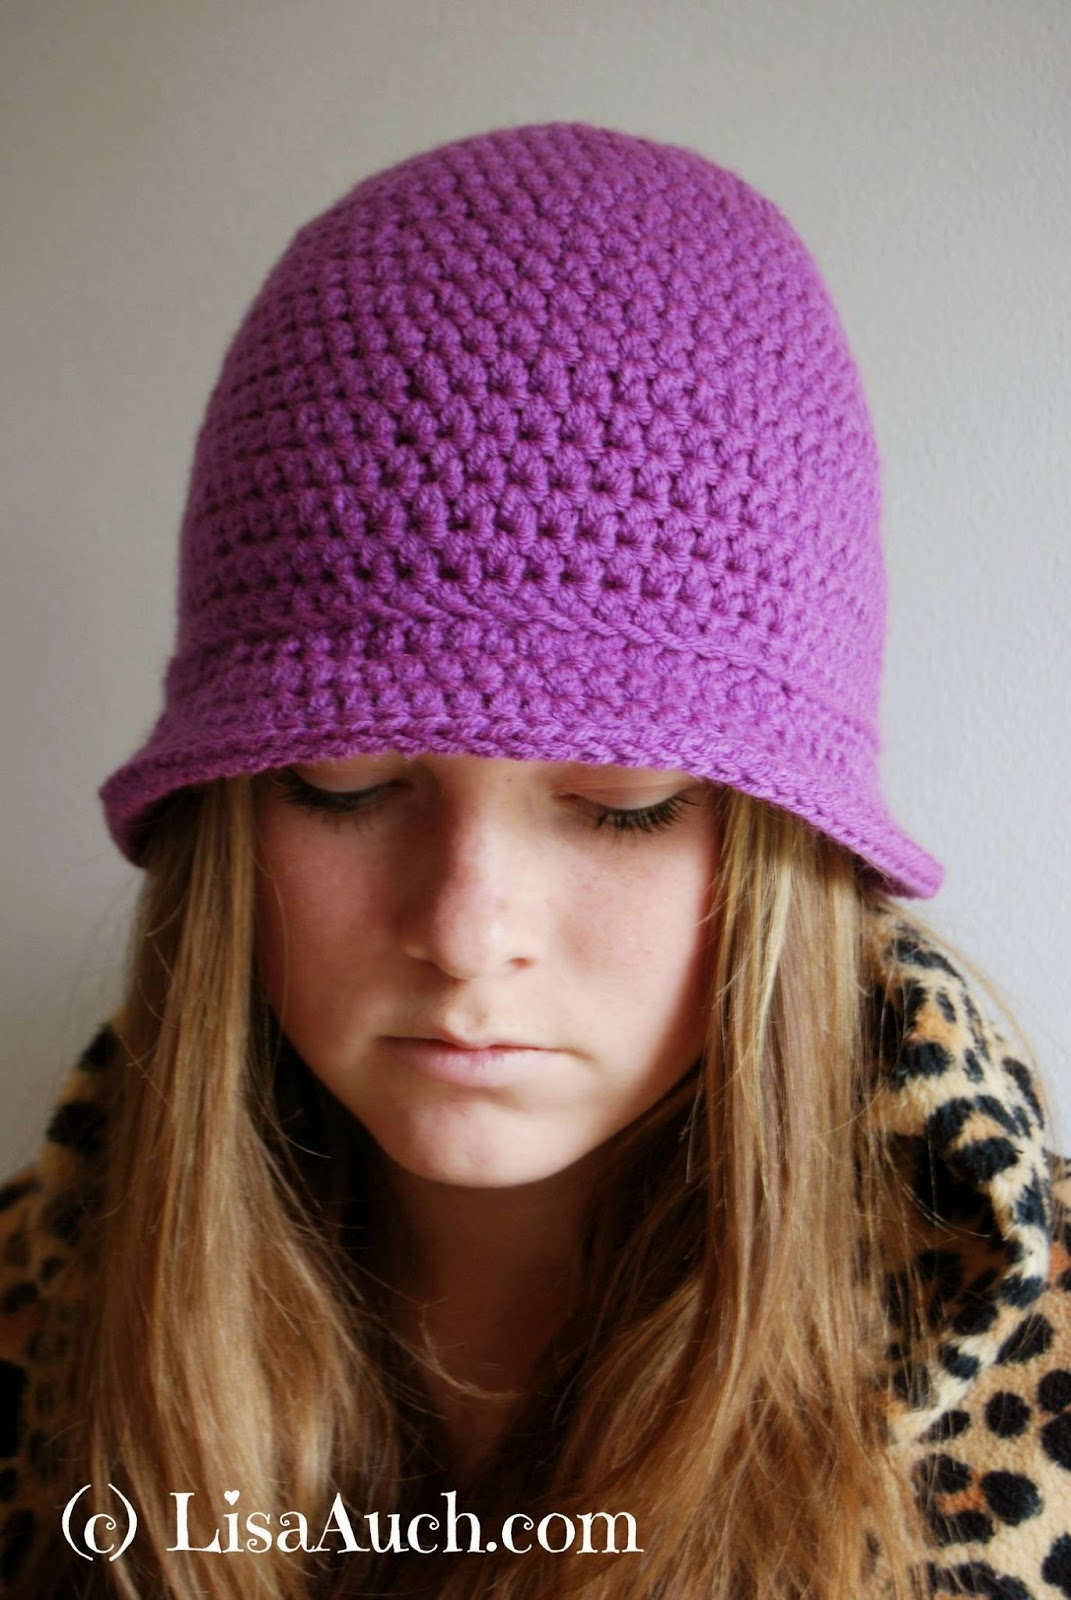 Crochet Hat Free Pattern Woman : Womans Hat FREE Crochet Pattern Womans Bucket Hat in Half ...